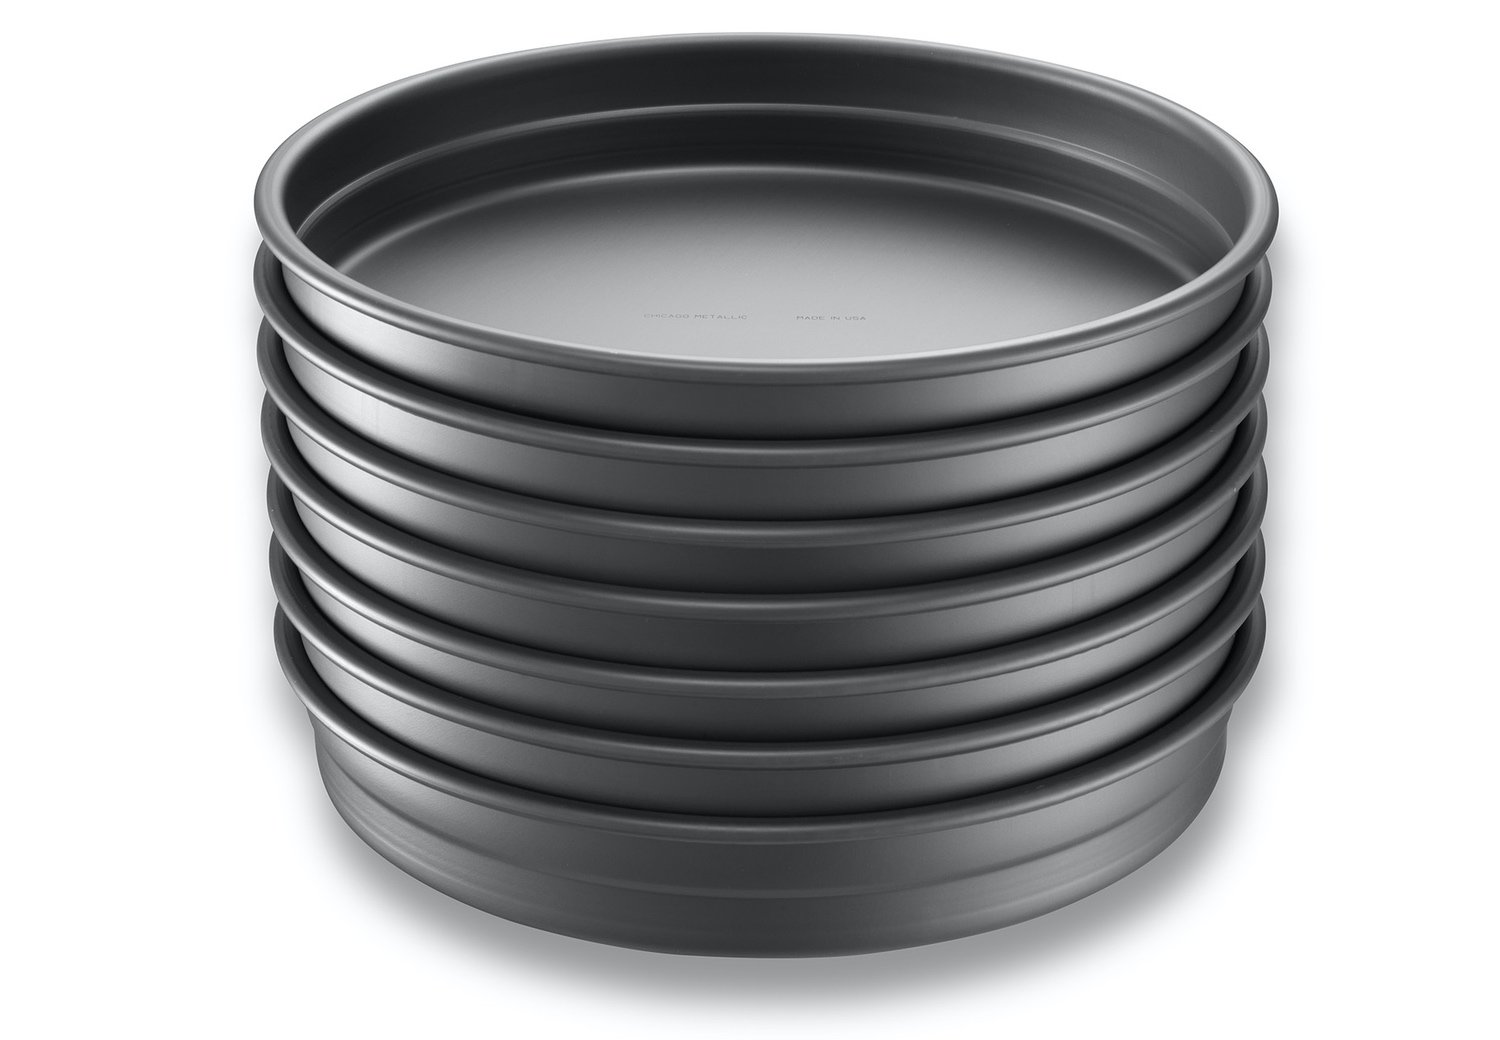 Round Deep Dish Pizza Pan Stack – Anodized Aluminum with AMERICOAT® Coating